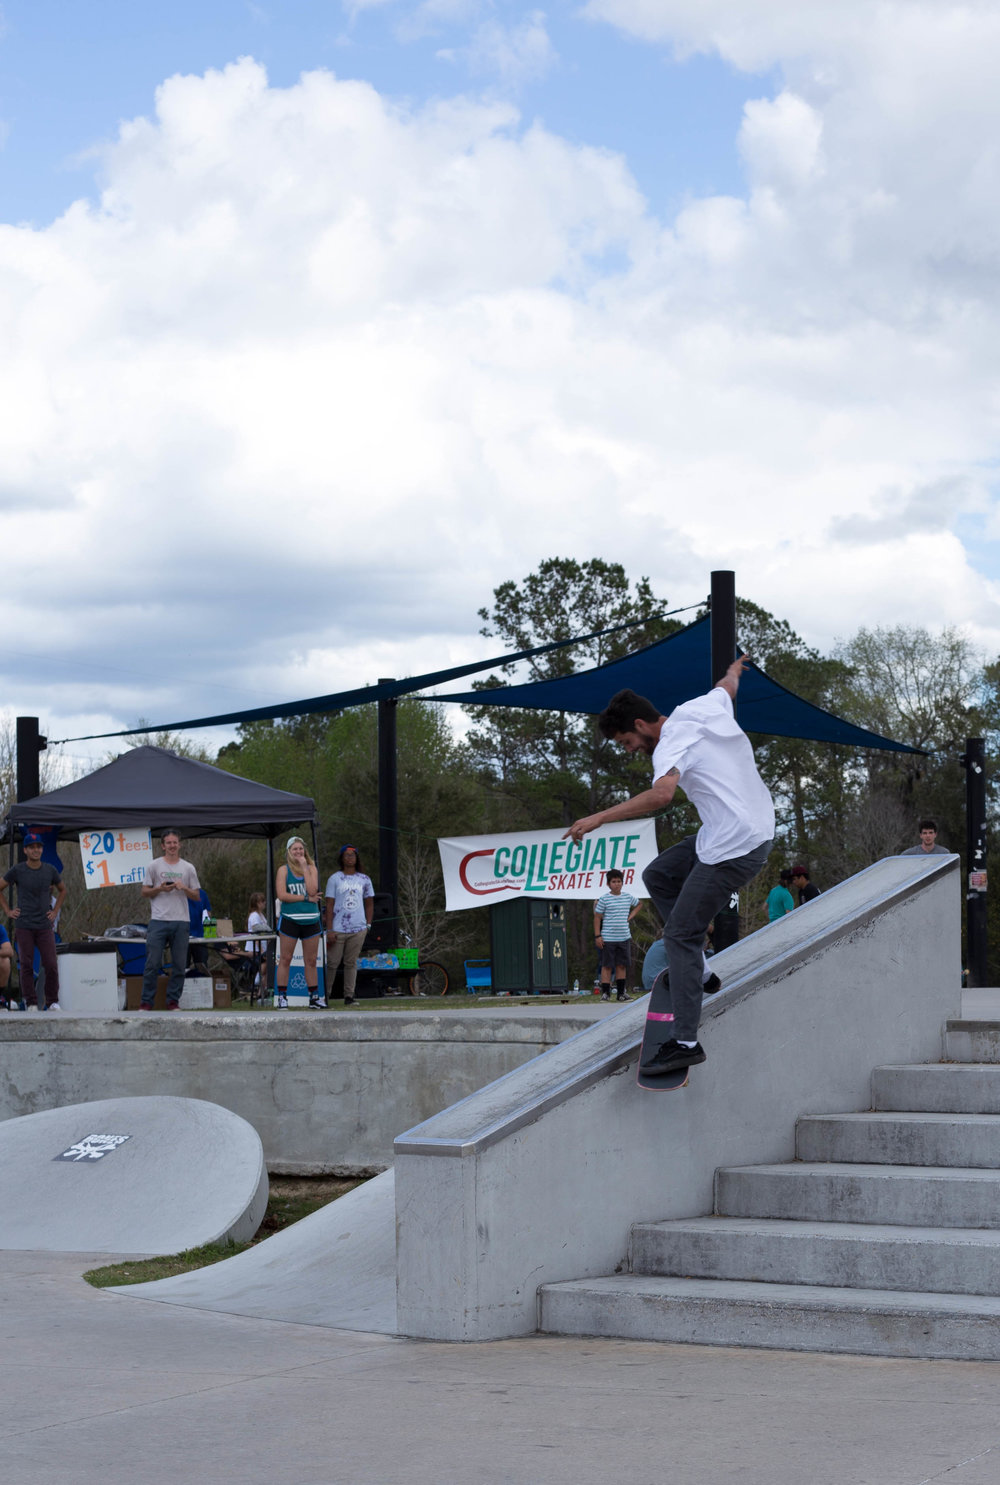 Landy Collada had this frontside smith grind just about every try.